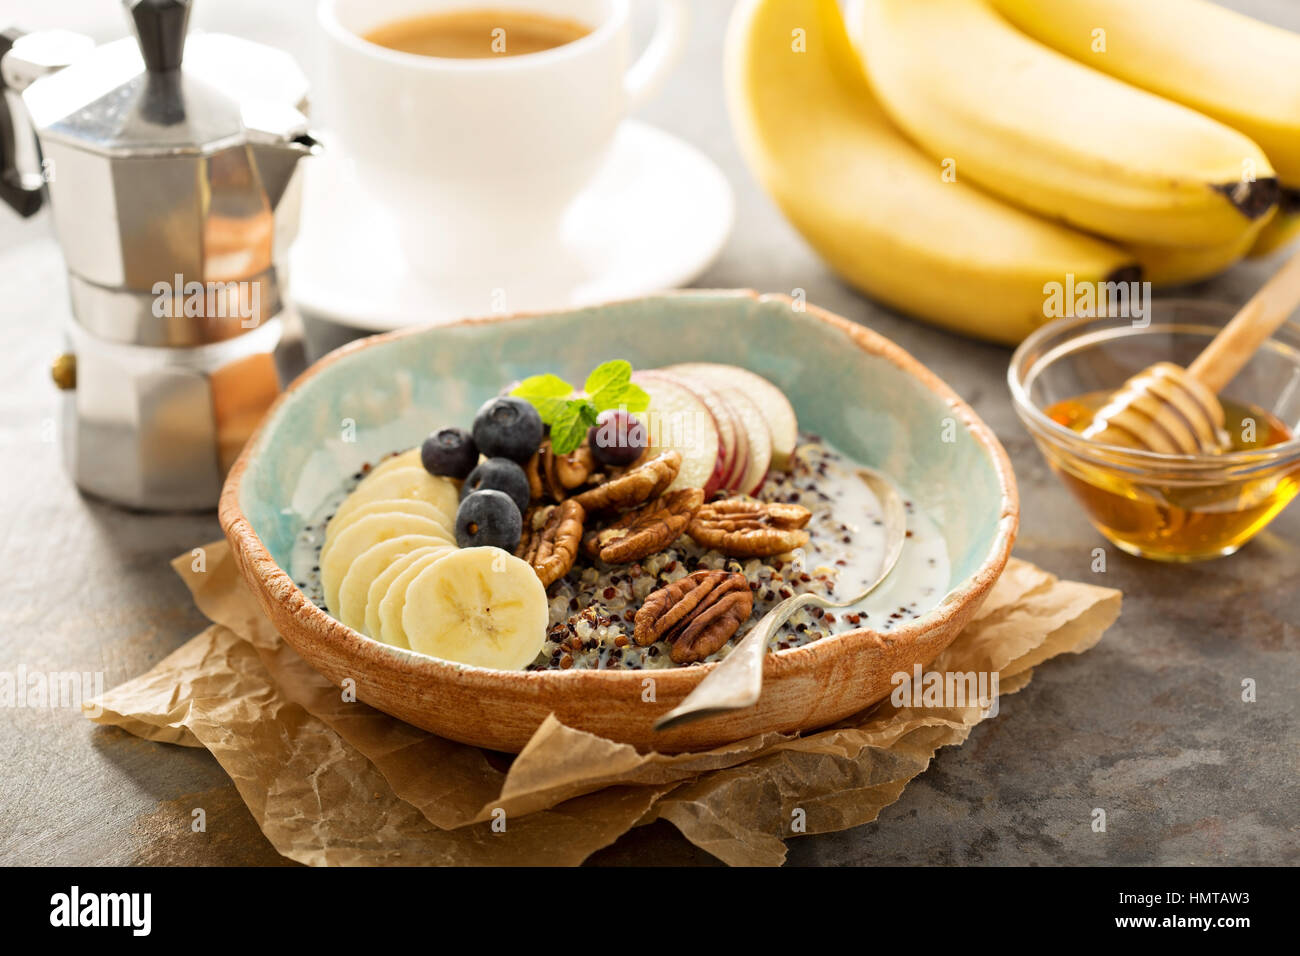 Quinoa porridge with banana, blueberry and pecan nuts for breakfast - Stock Image